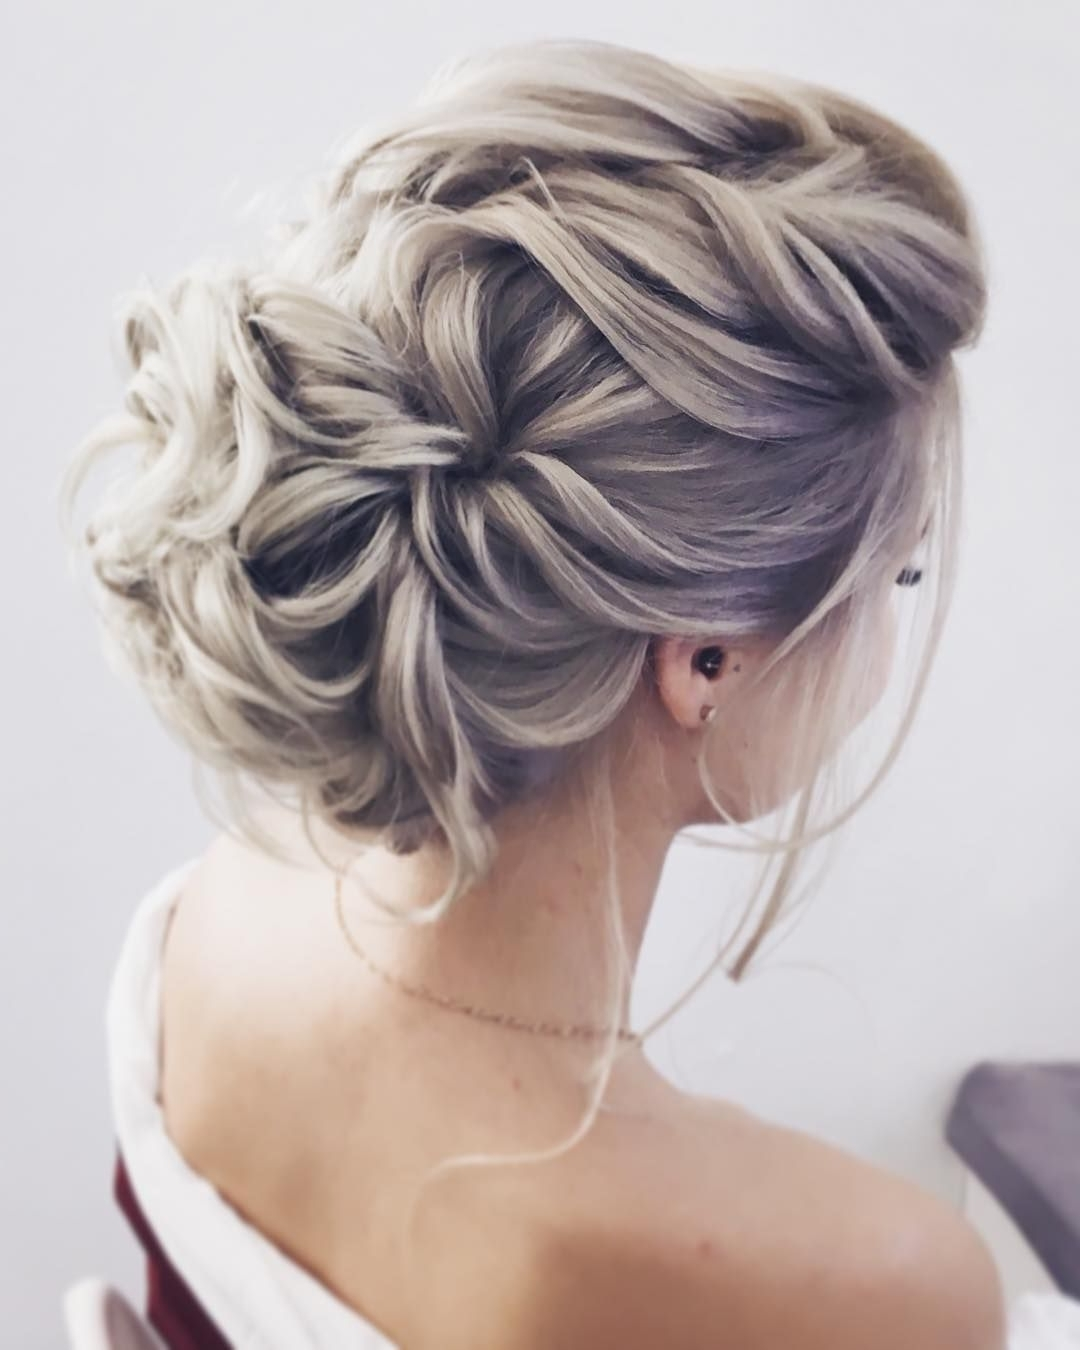 Gorgeous Feminine Wedding Hairstyles For Long Hair | Messy Wedding For Bridal Updo Hairstyles For Long Hair (Gallery 11 of 15)